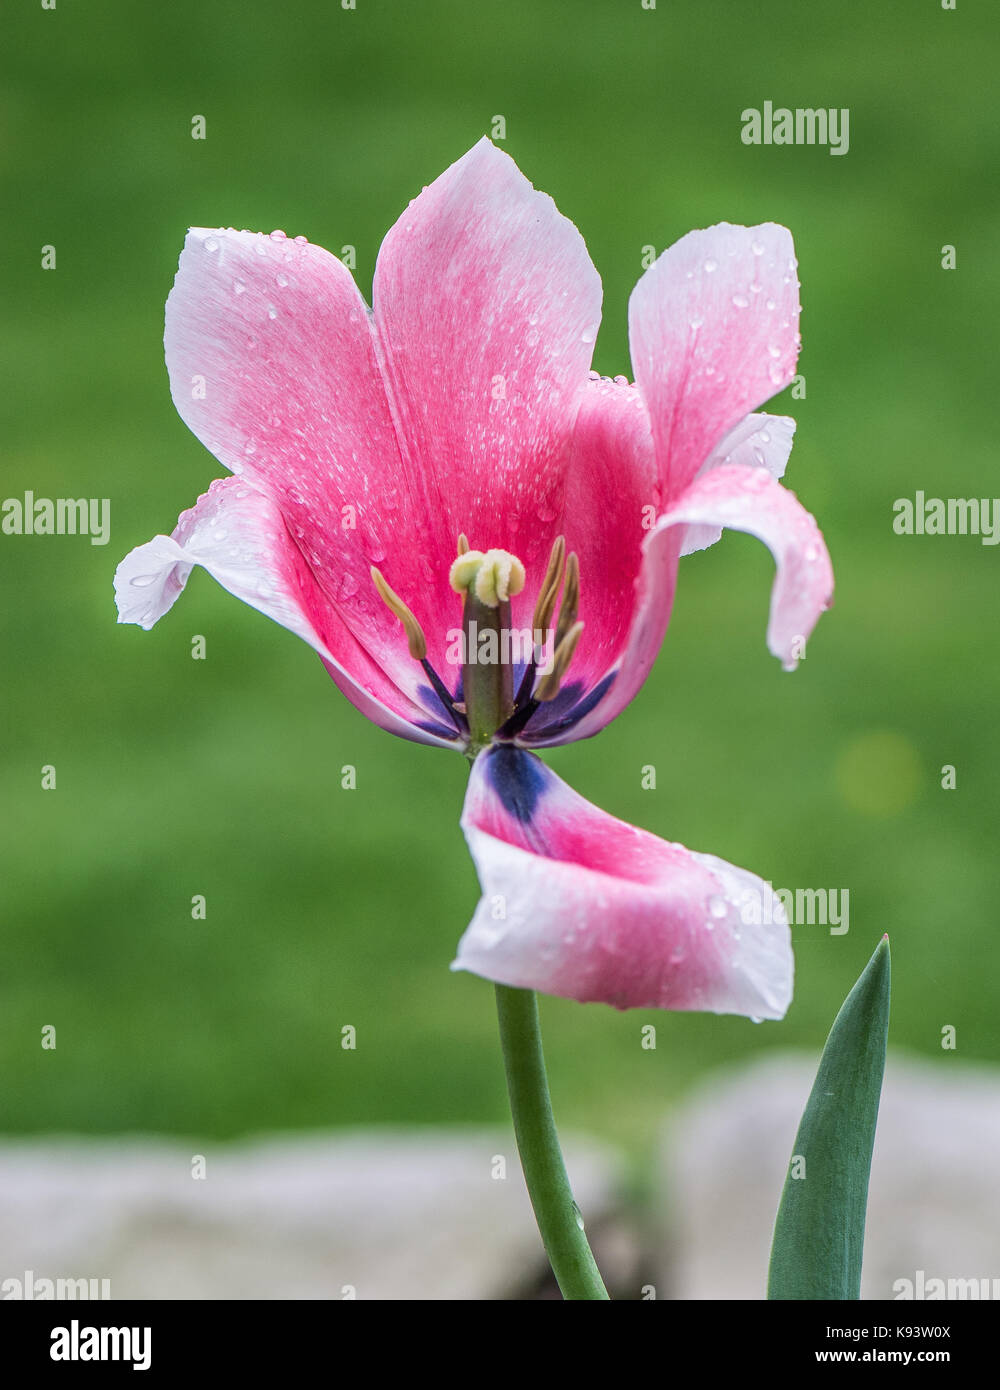 Tulip pistil surrounded by stamens, Hamburg, Germany - Stock Image